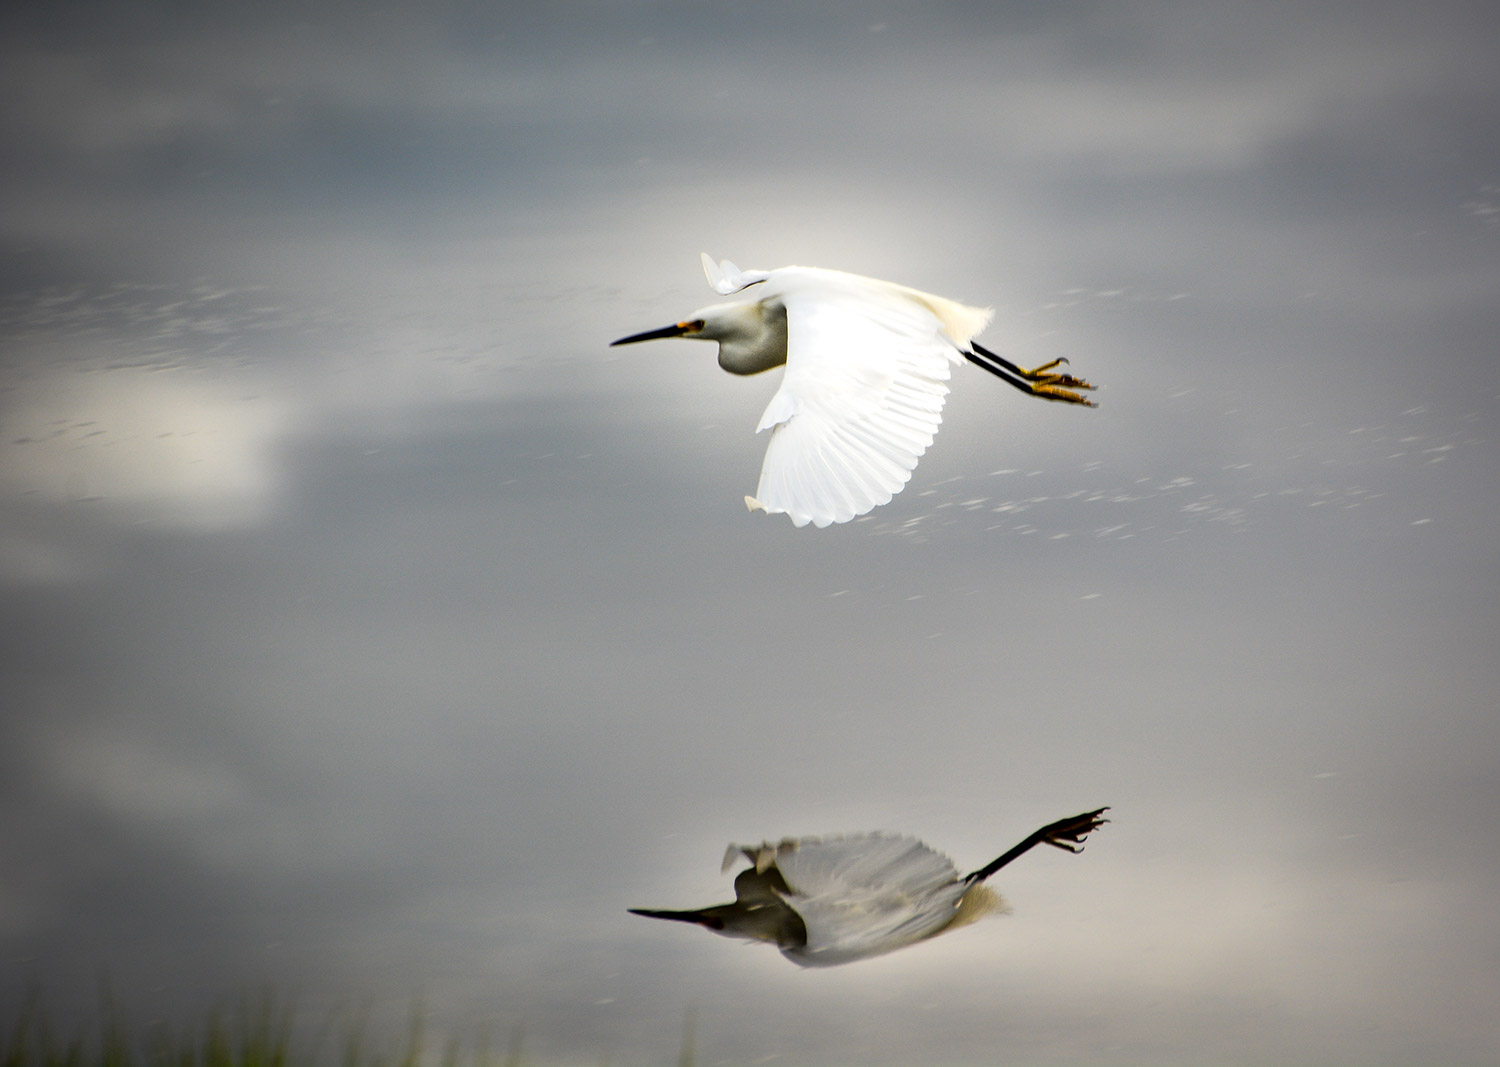 Upon further reflection, that's a nice snowy egret flying low over the Scarborough Marsh where Ann Blanchard has taken many fine photos over the years.